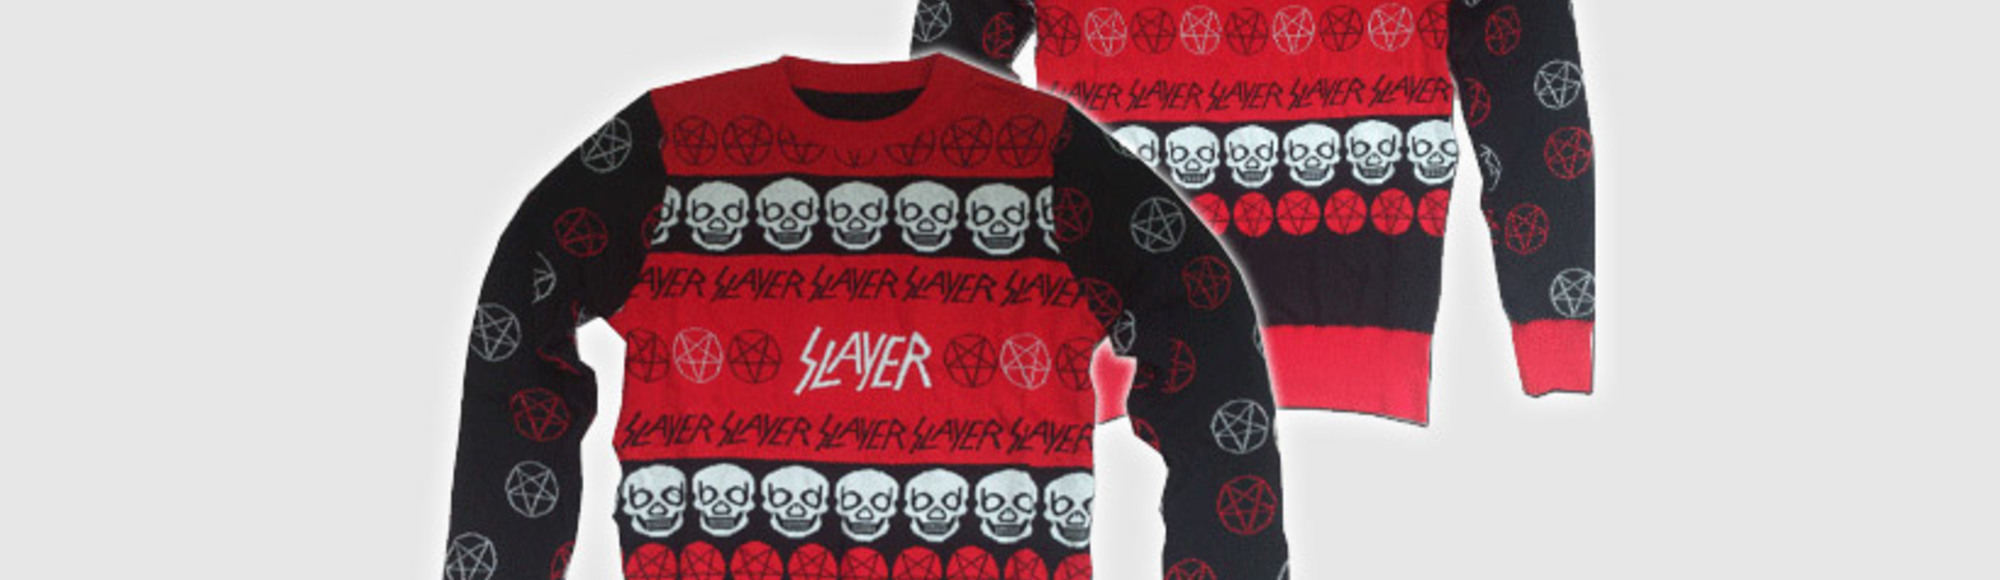 The Slayer Christmas Sweater Is a Disgrace